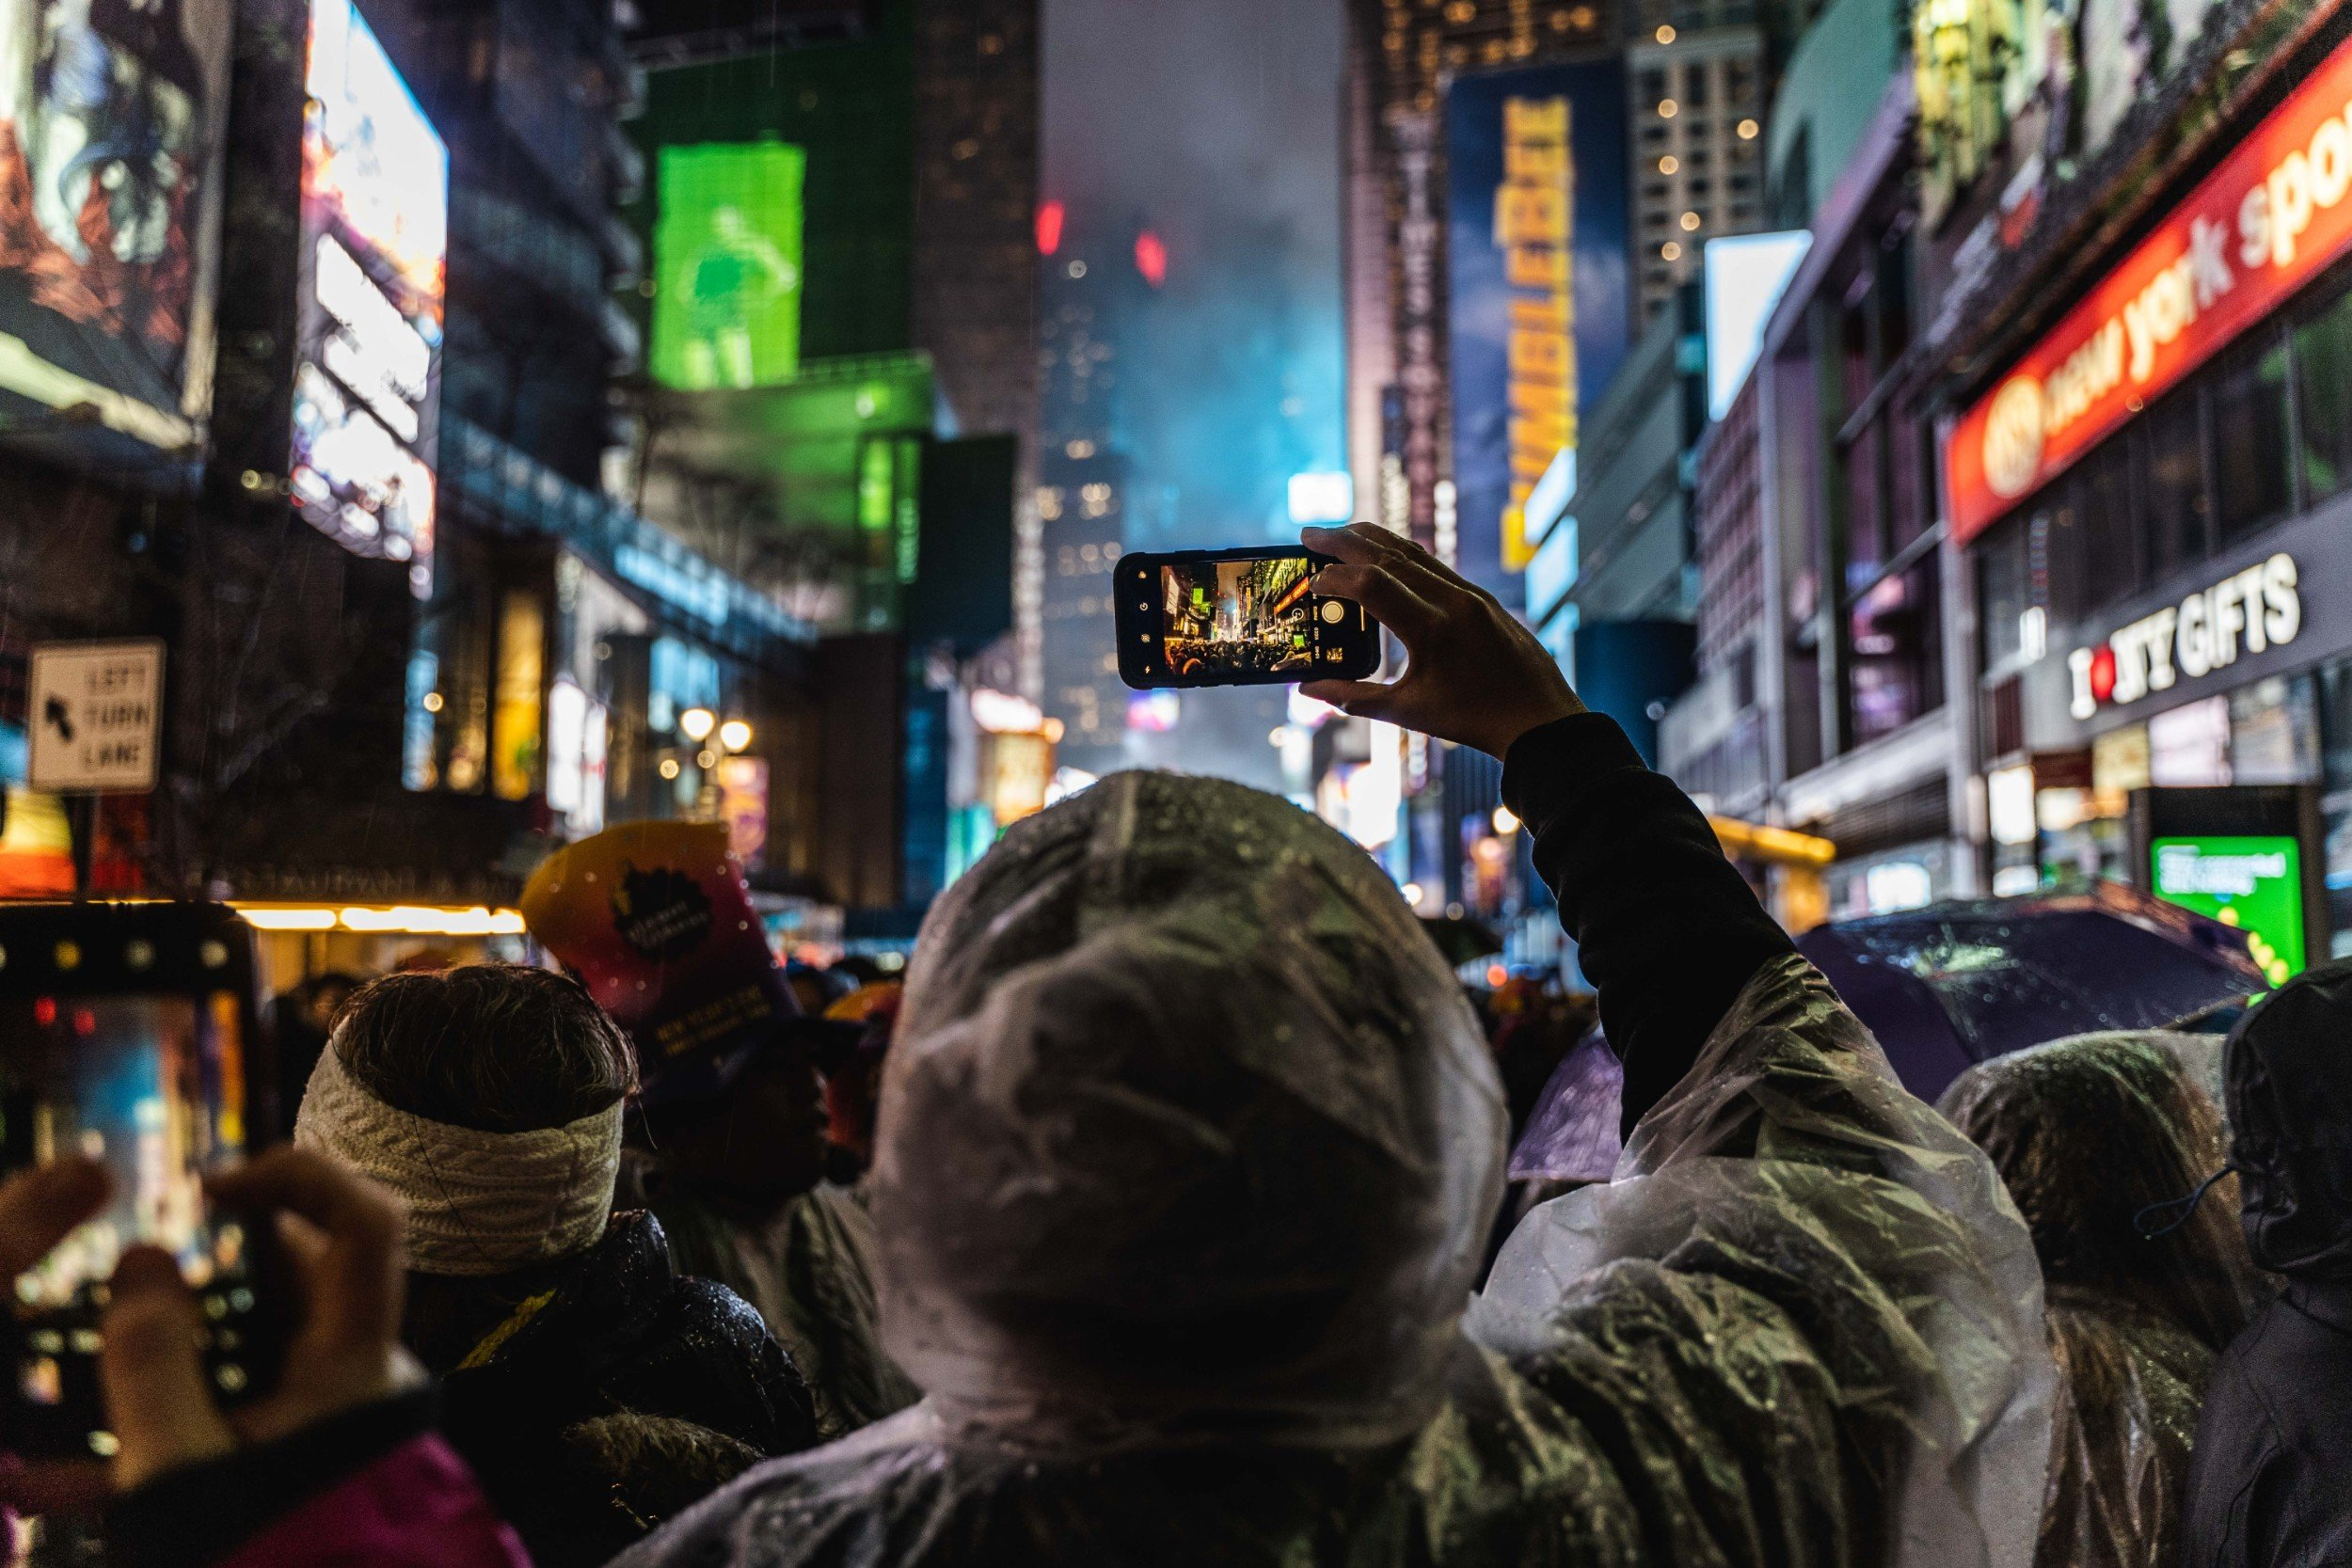 Crowds gather to watch the ball drop in Times Square on New Year's Eve